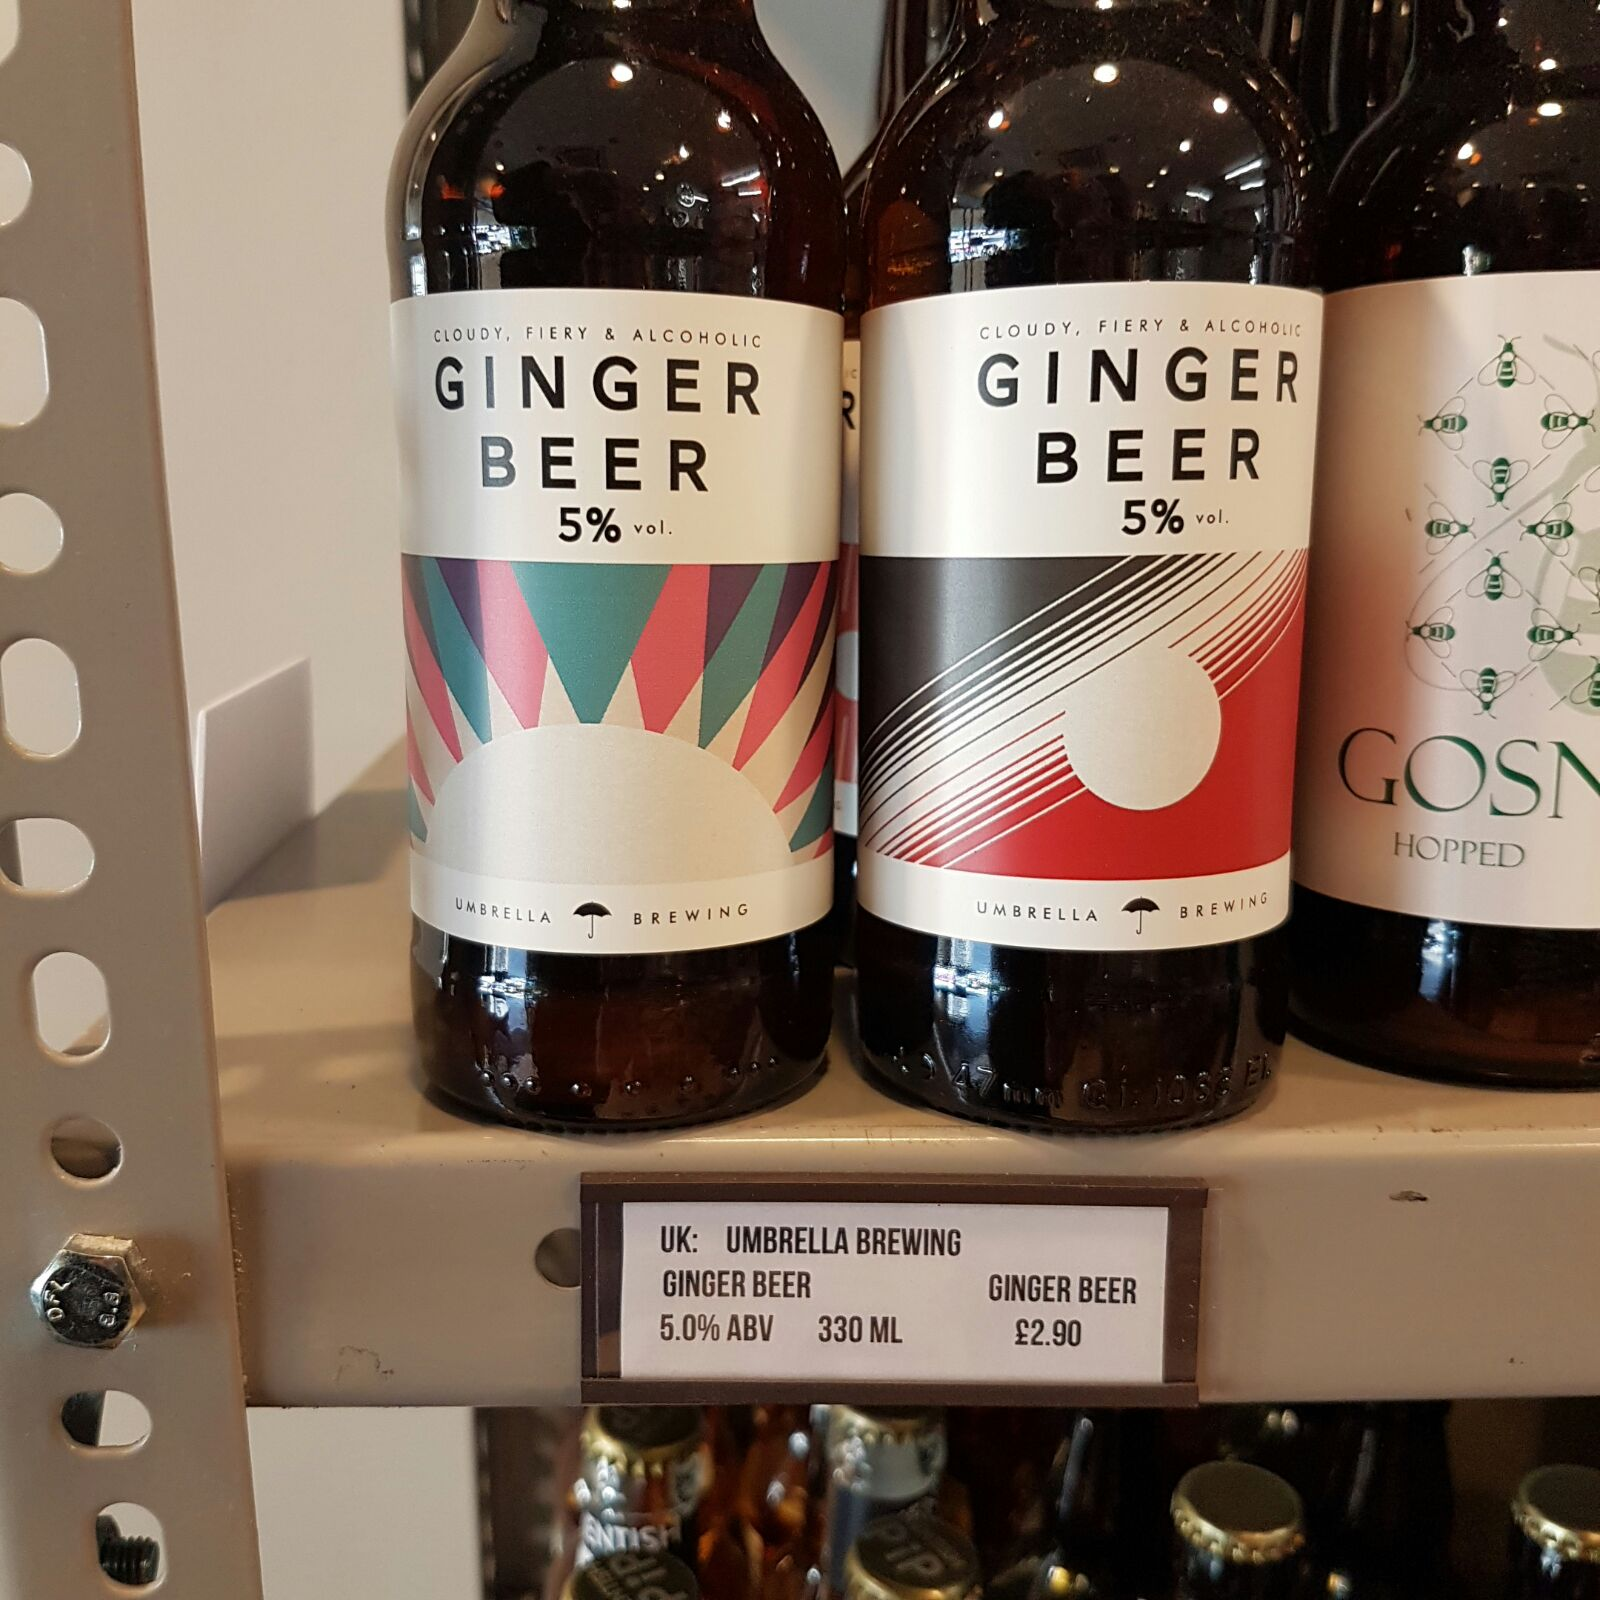 umbrella-brewing-ginger-beer-stockists-7-seasons-03